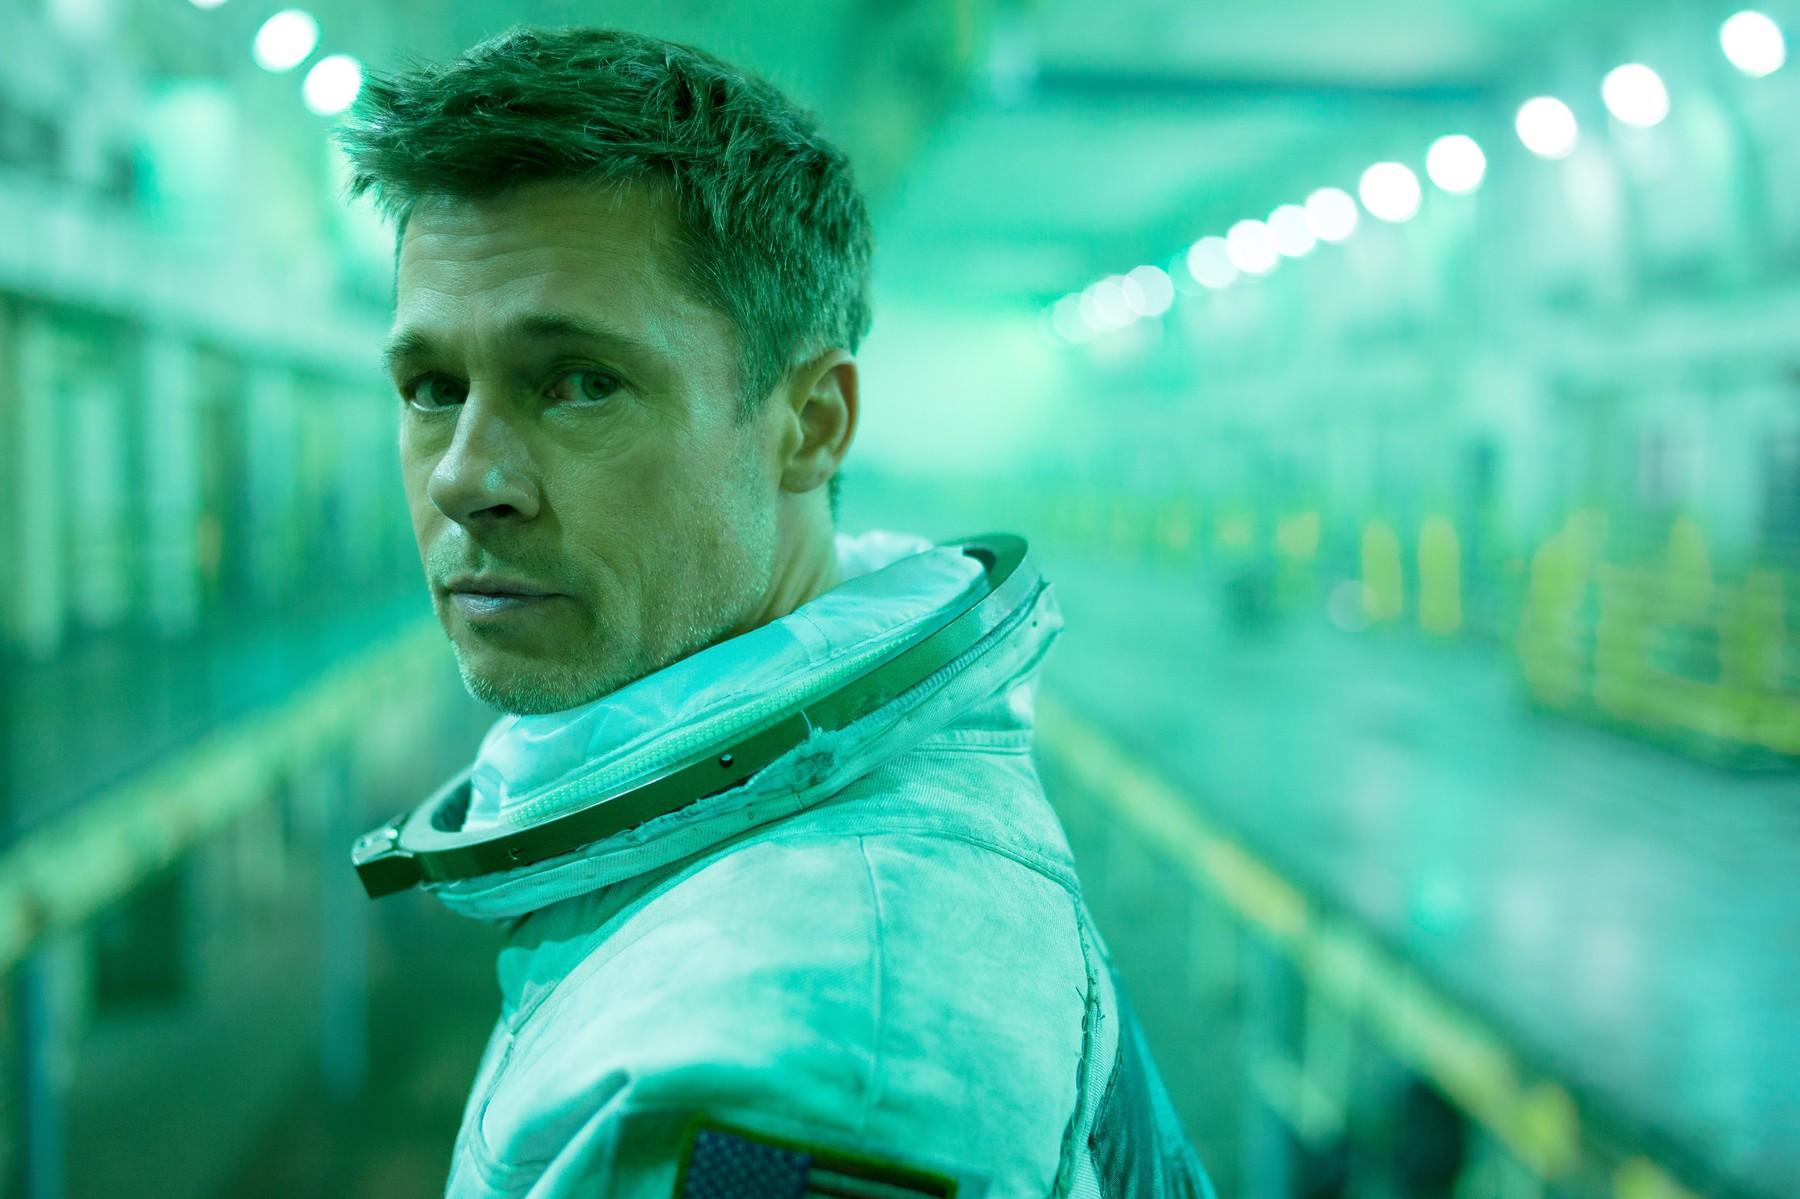 USA. Brad Pitt in a scene from the ©Twentieth Century Fox new movie: Ad Astra (2019). Plot: An astronaut travels to the outer edges of the solar system to find his father and unravel a mystery that threatens the survival of our planet. He uncovers secrets which challenge the nature of human existence and our place in the cosmos., Image: 461784550, License: Rights-managed, Restrictions: Supplied by Landmark Media. Editorial Only. Landmark Media is not the copyright owner of these Film or TV stills but provides a service only for recognised Media outlets., Model Release: no, Credit line: Profimedia, Landmark